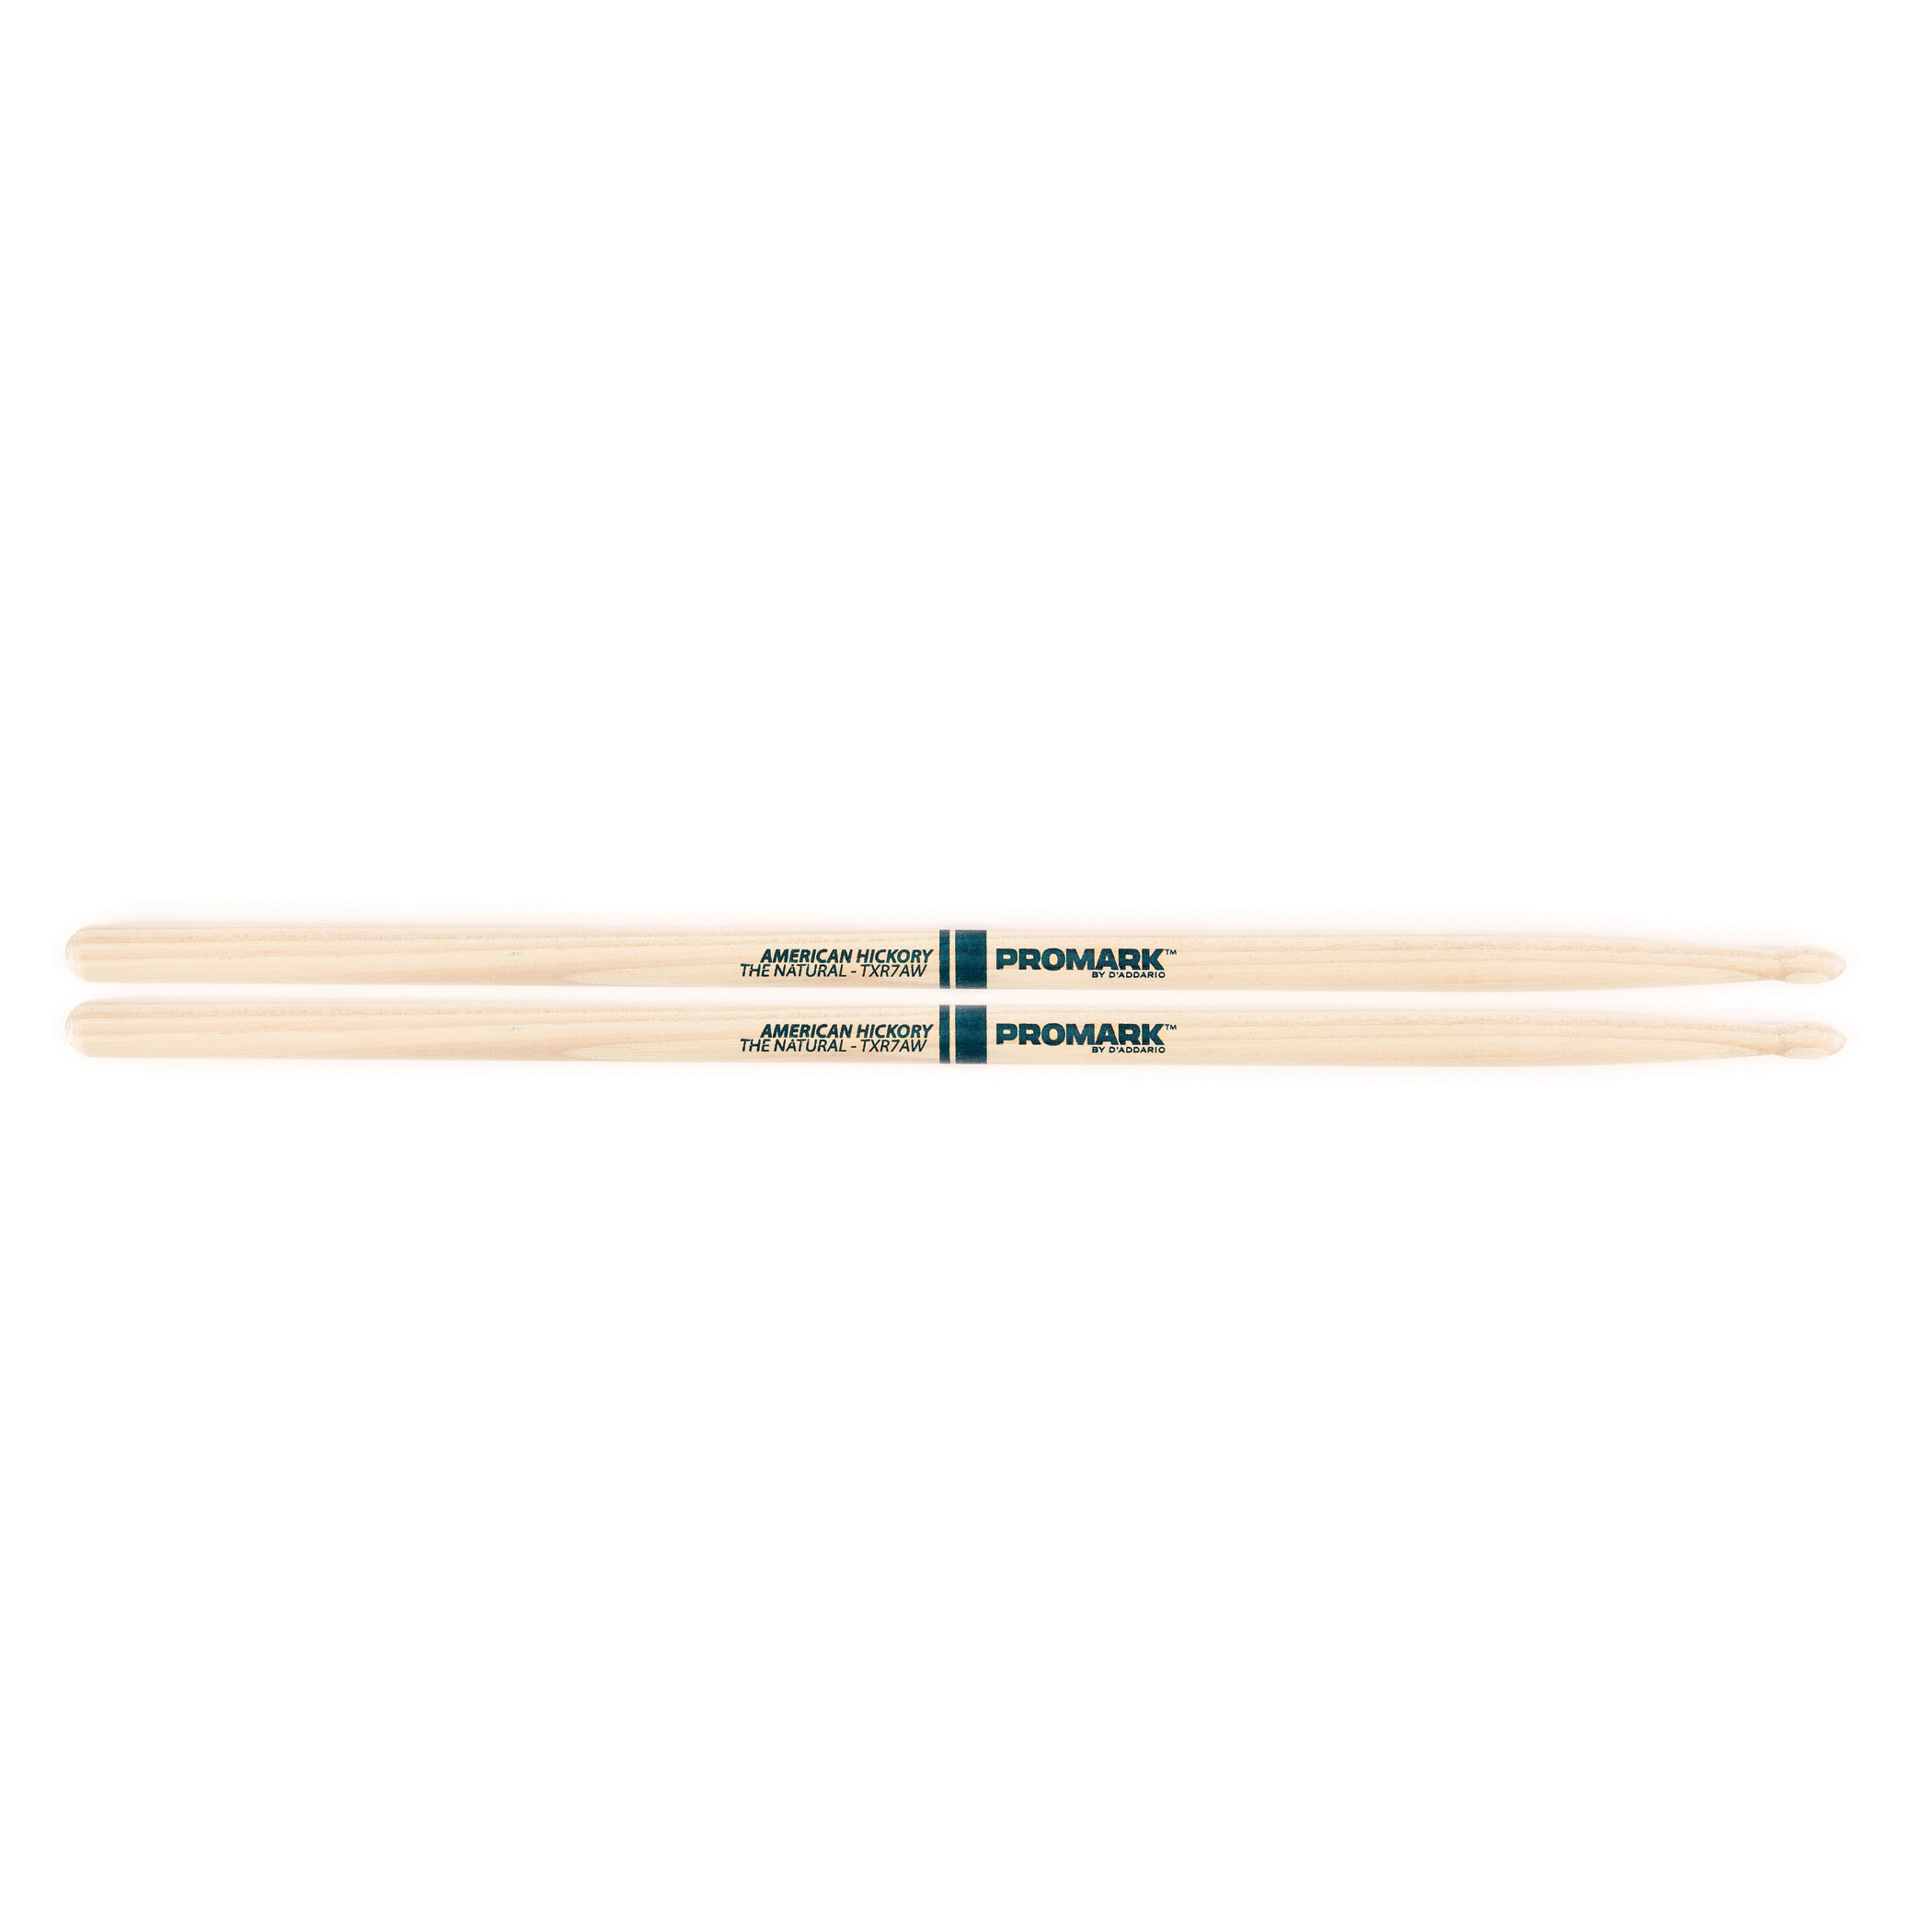 Promark Classic Natural 7A Wood Tip Drumsticks